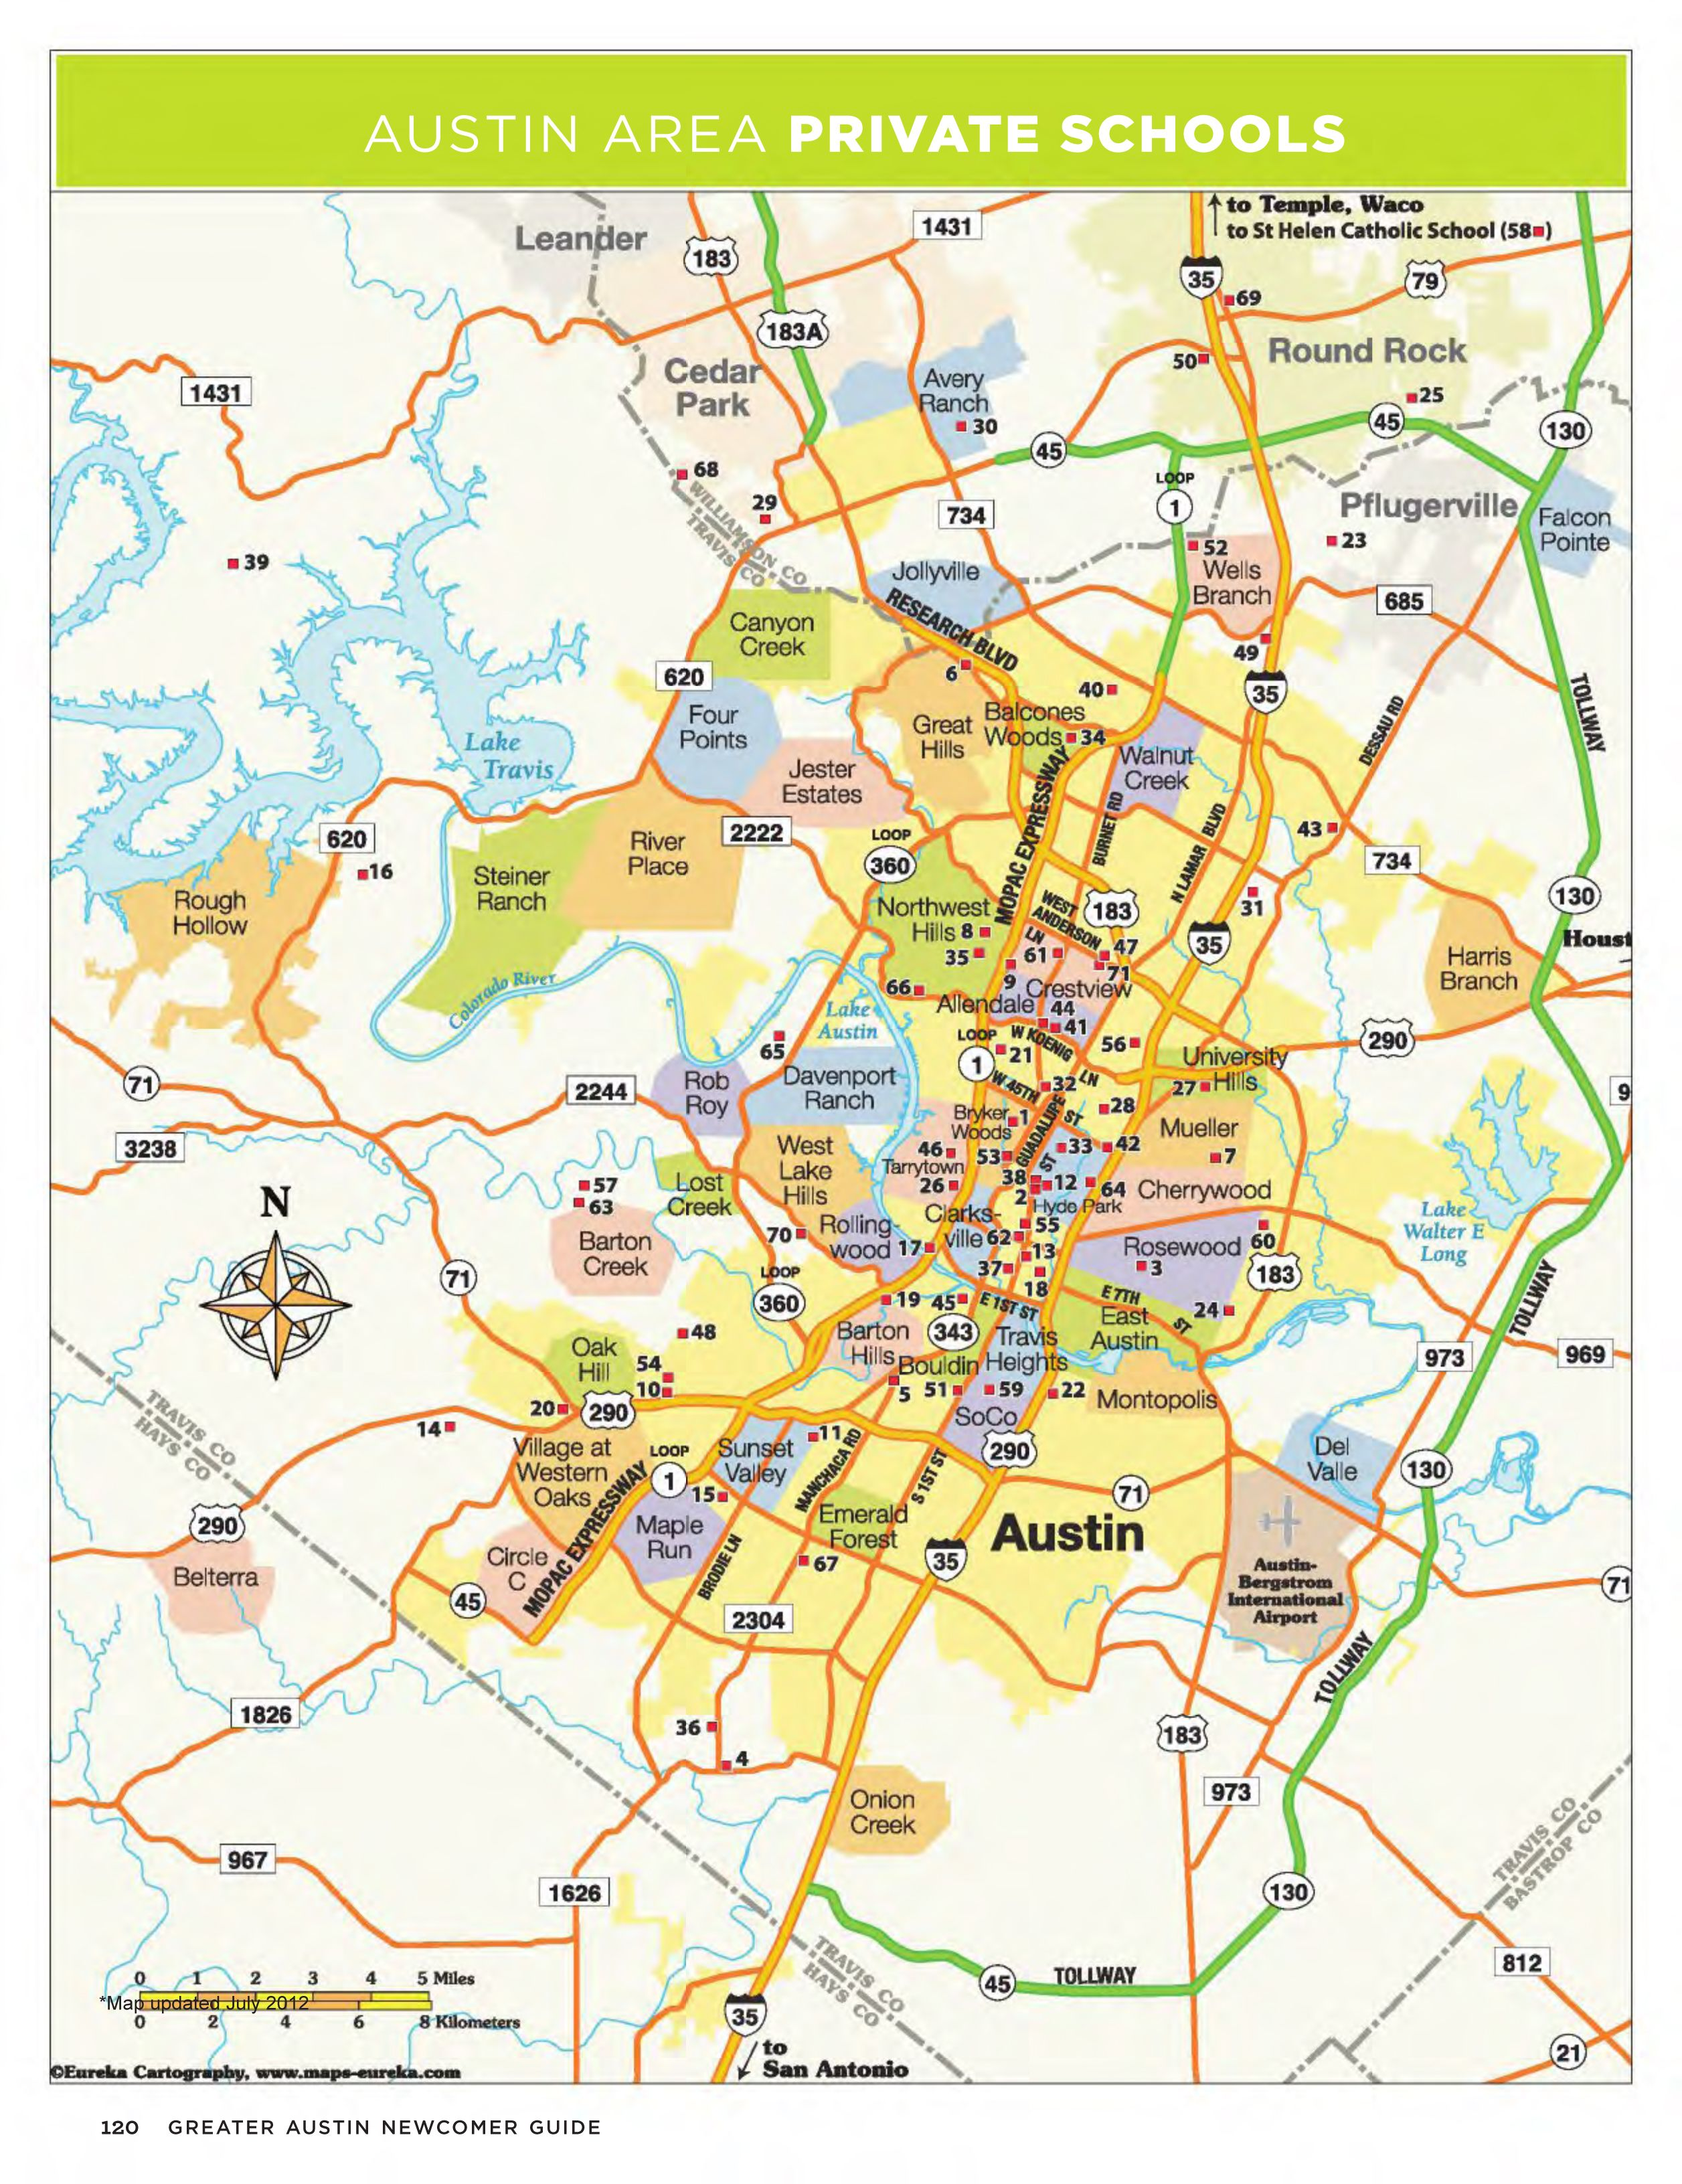 Austin area private schools, map view | more MAPS | Pinterest